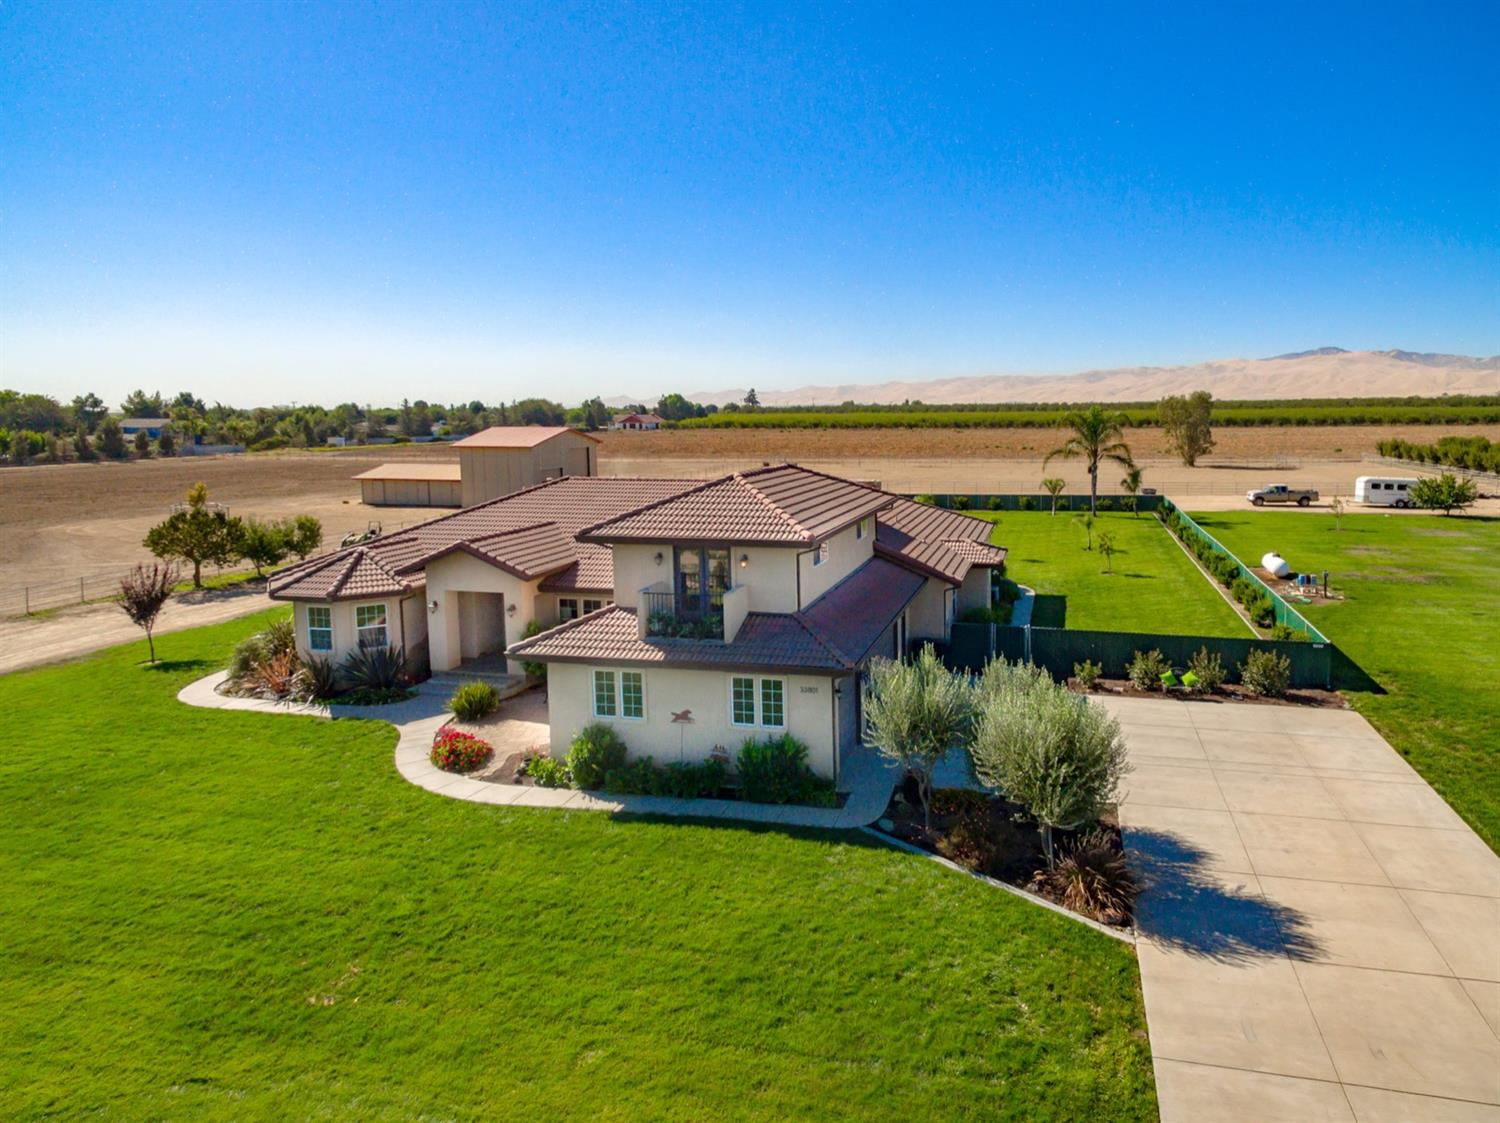 Photo of 33801 S Koster Road, Tracy, CA 95304